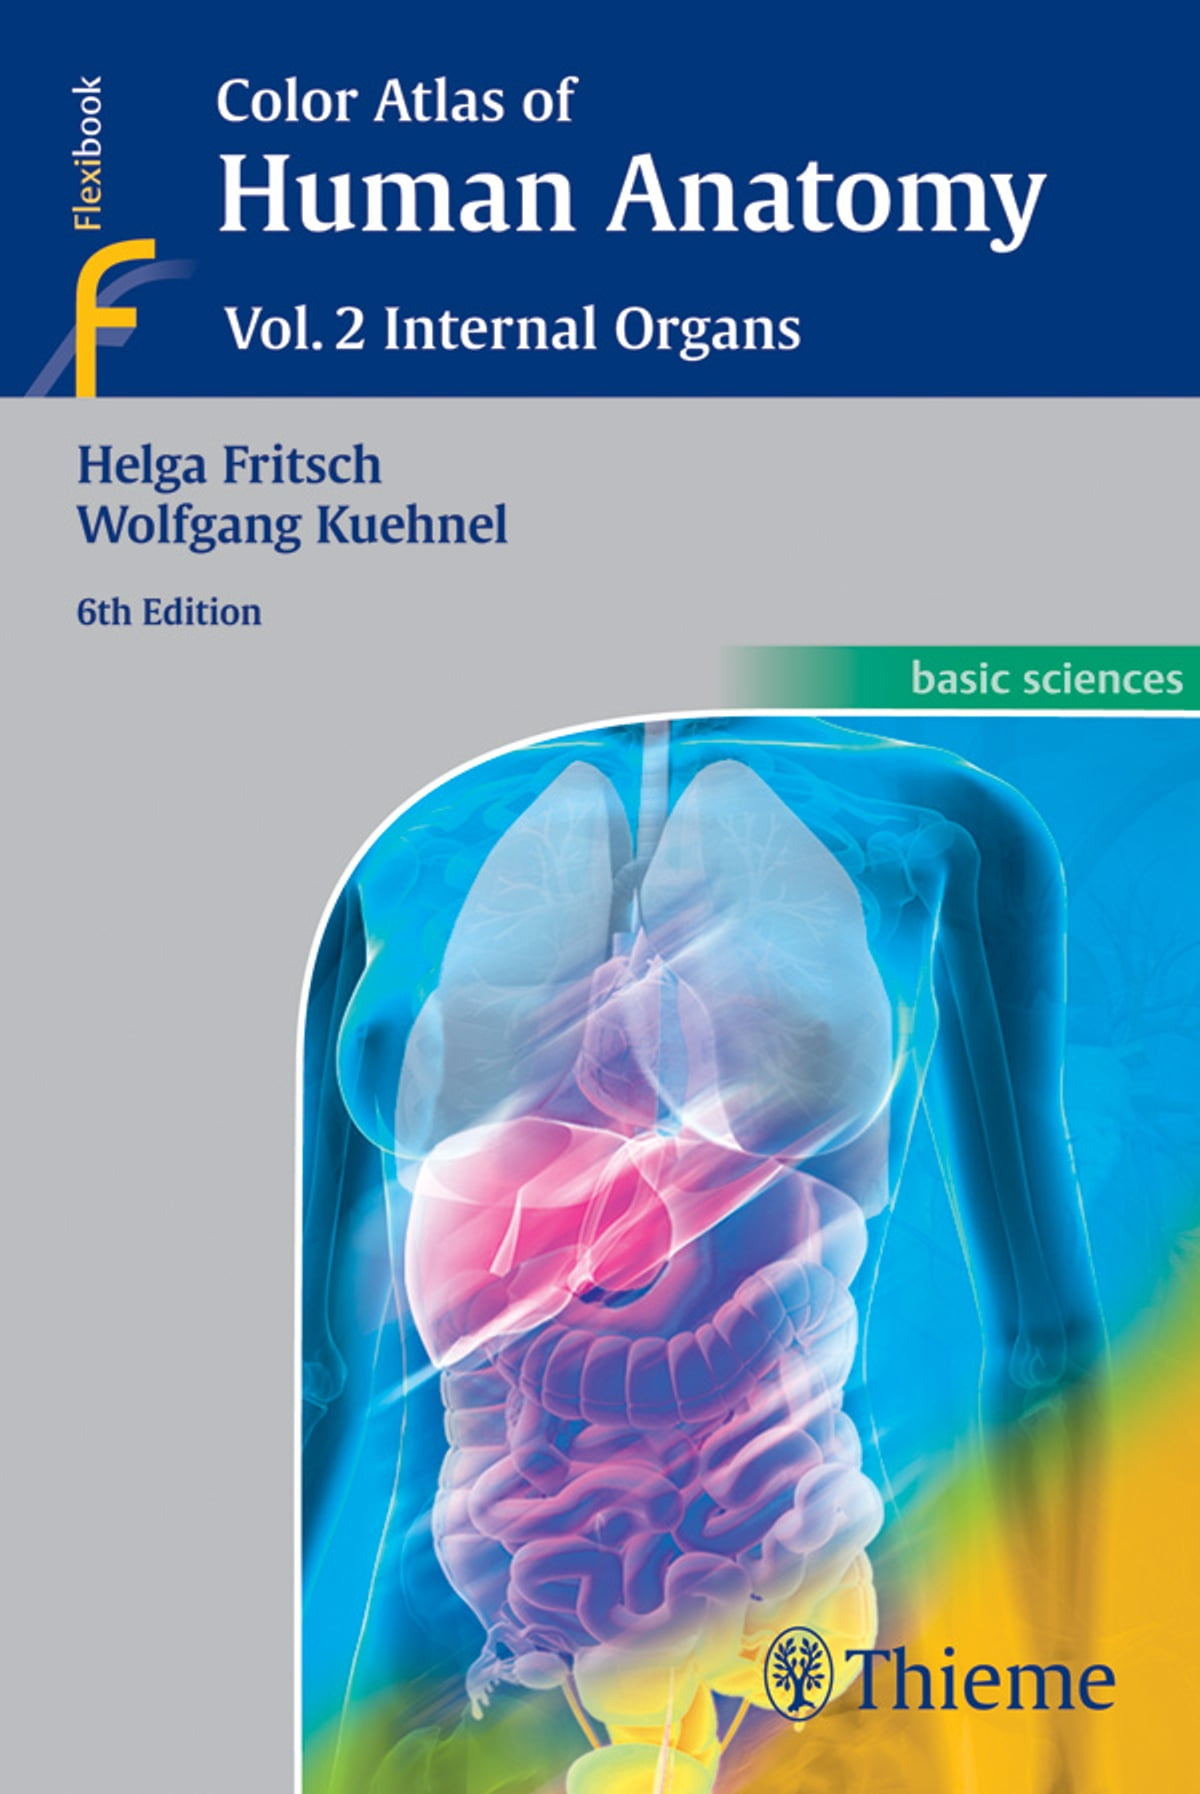 Color Atlas Of Human Anatomy Vol 2 Internal Organs Ebook By Helga